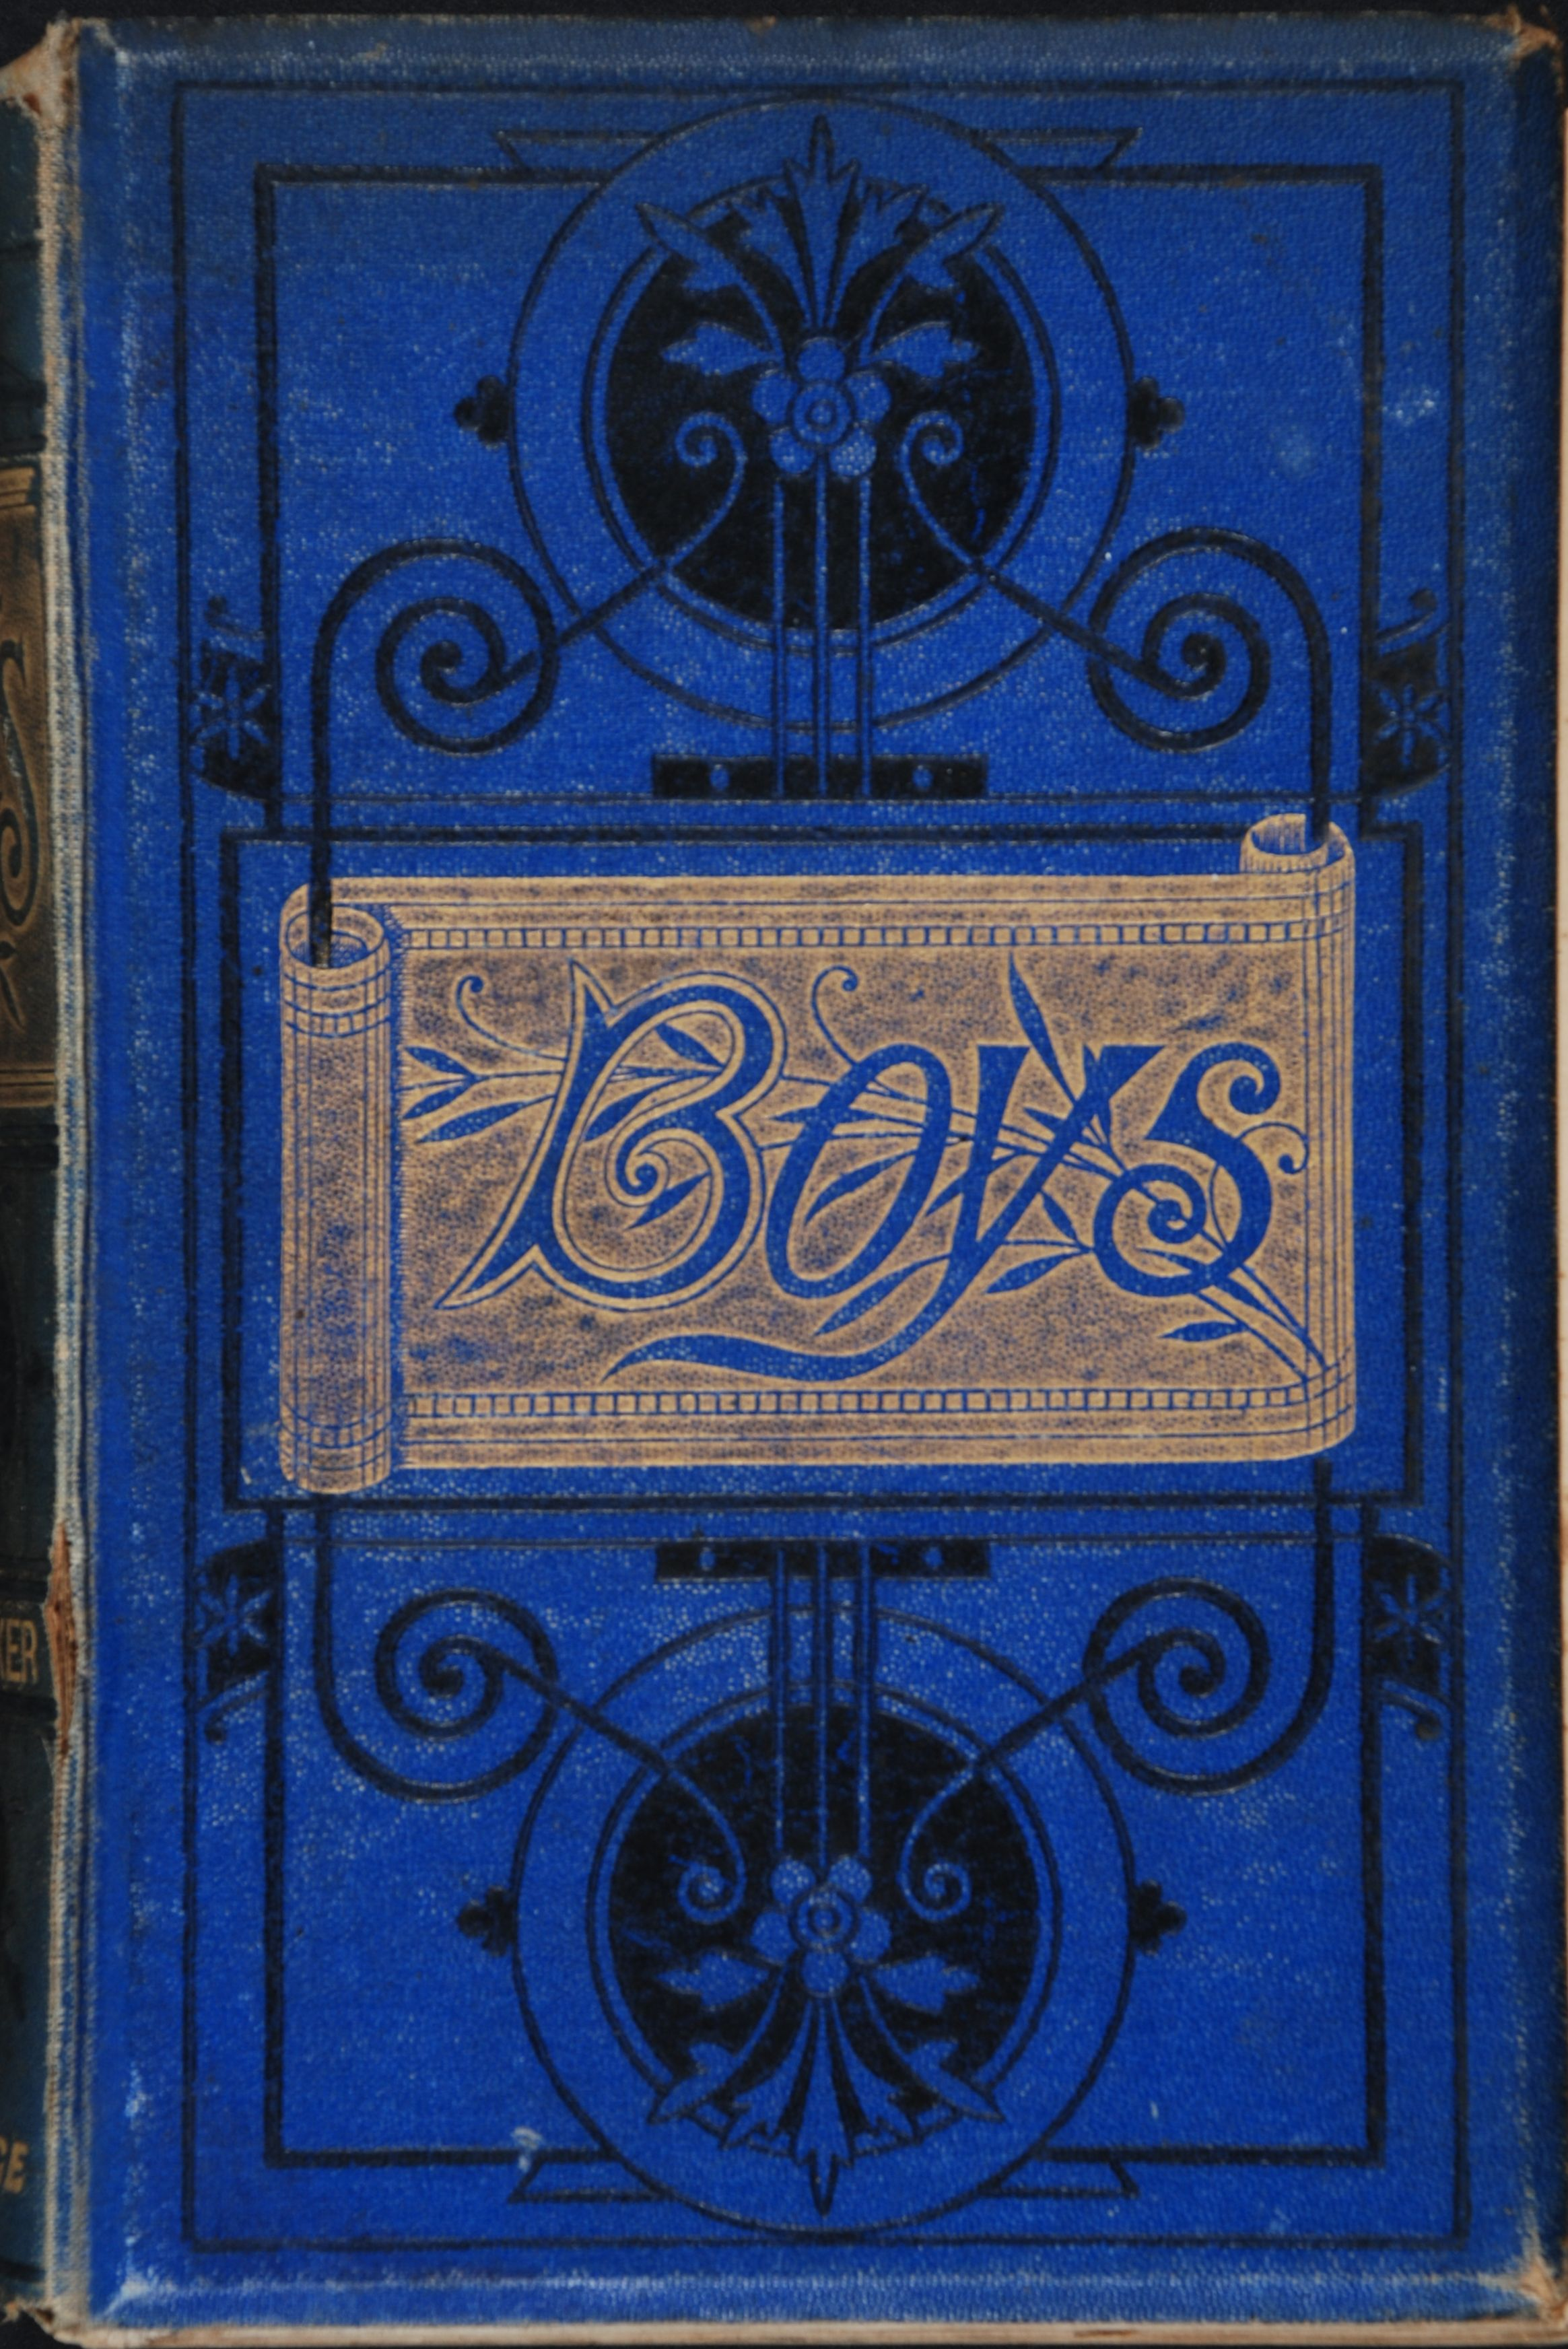 Lady Barker. Boys. London: George Routledge and Sons, 1874.